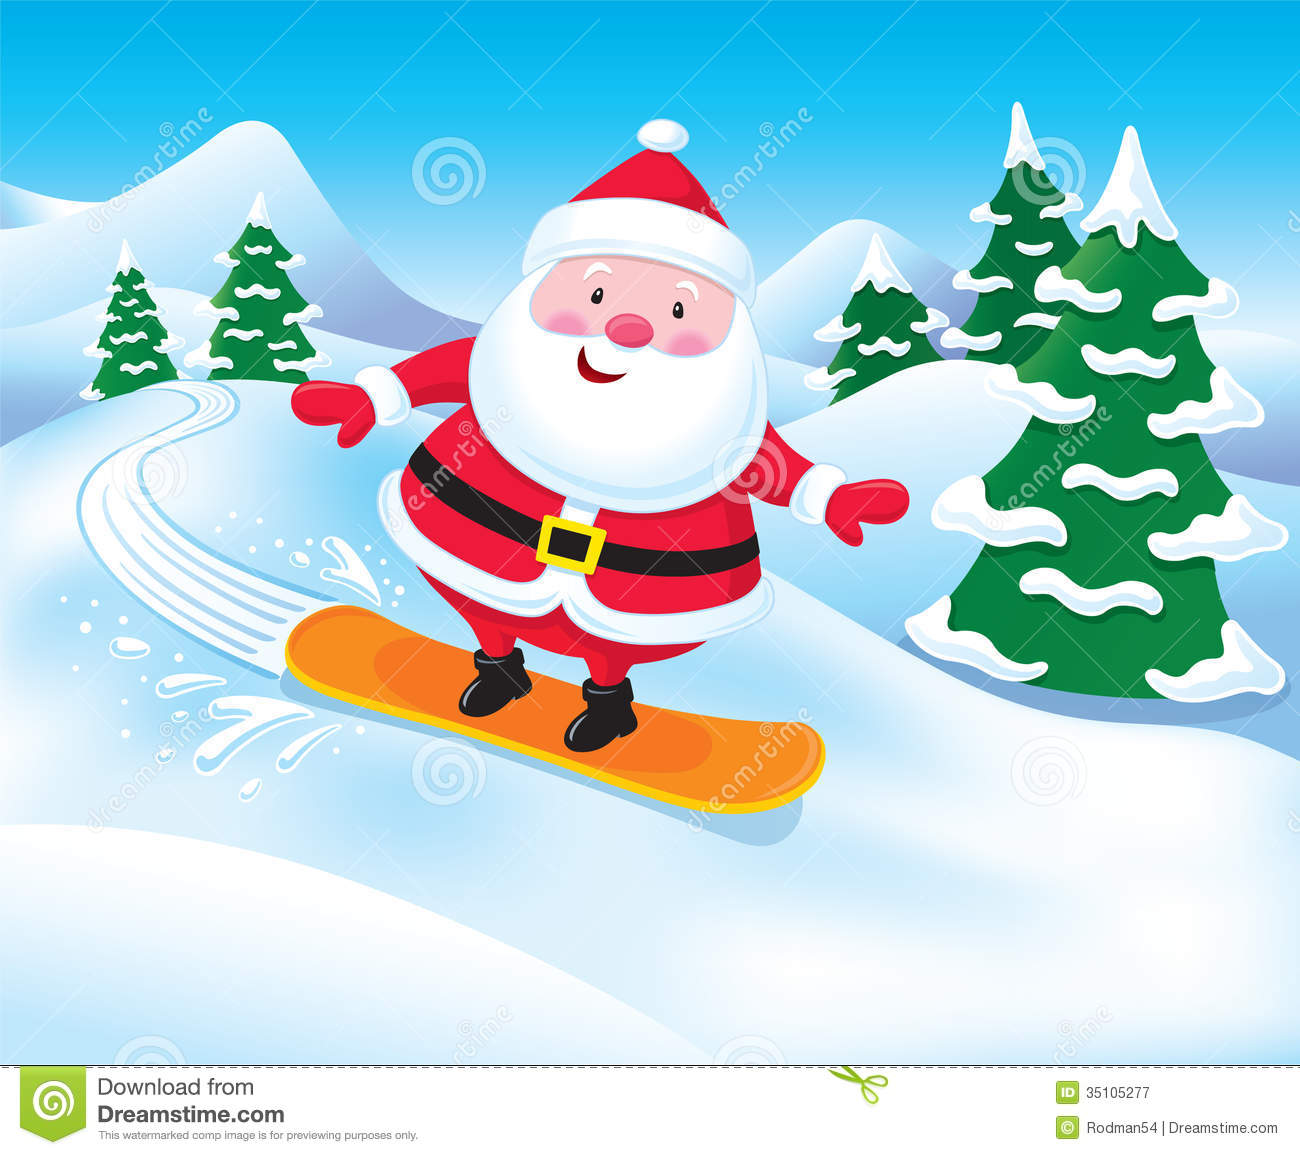 Cartoon illustration of a Santa Claus character snowboarding down a ...